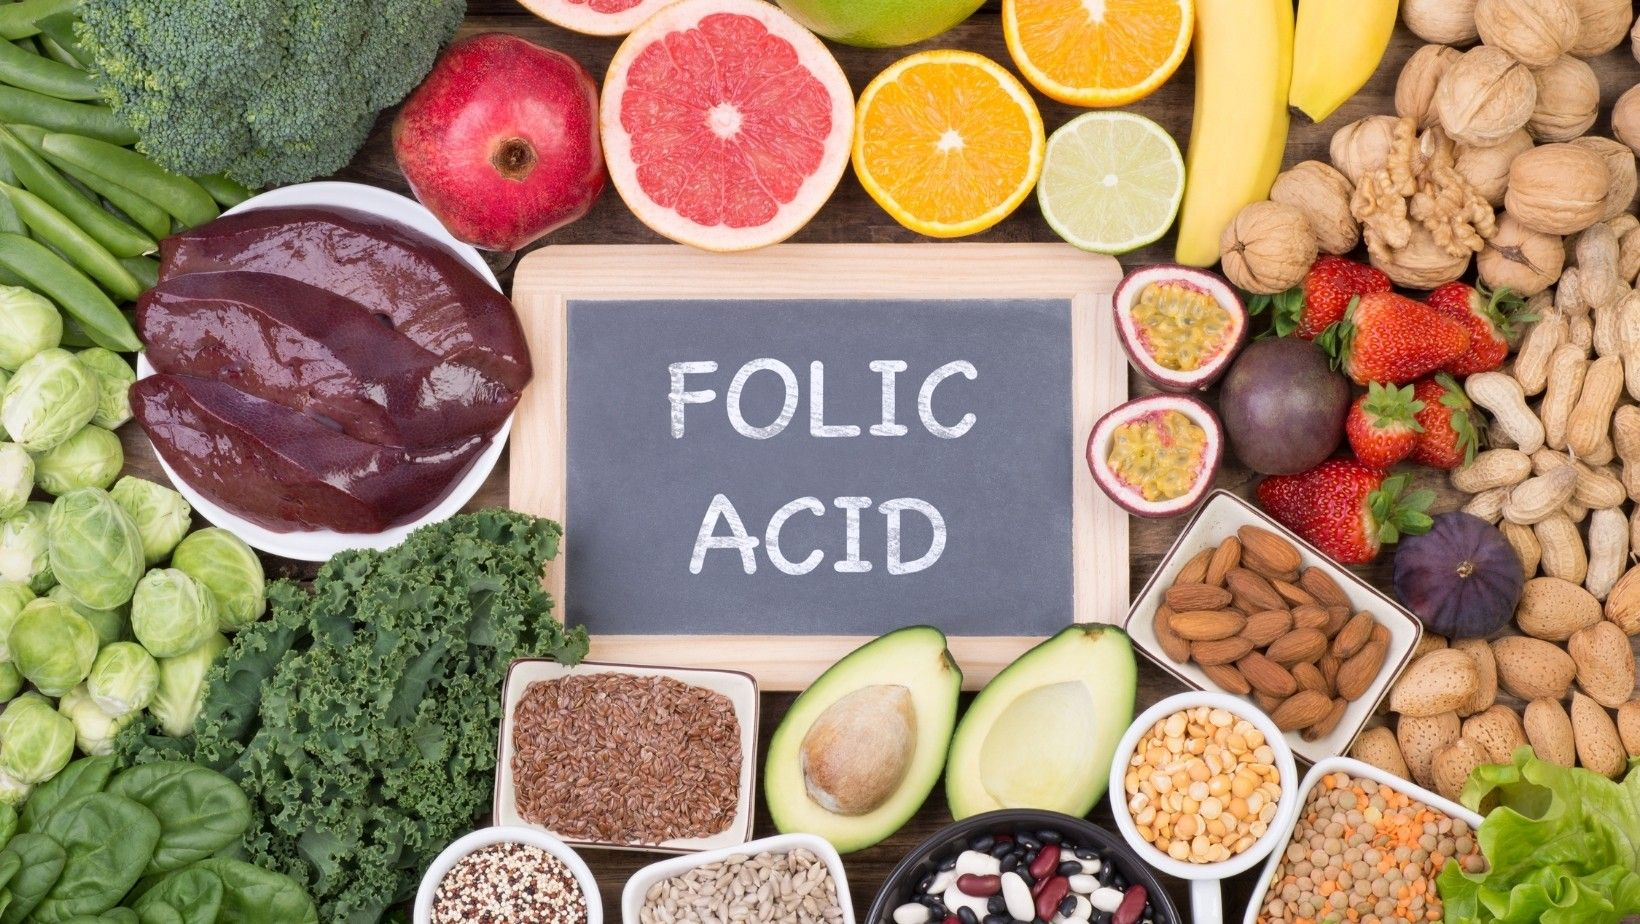 How do I know if I have enough folic acid?